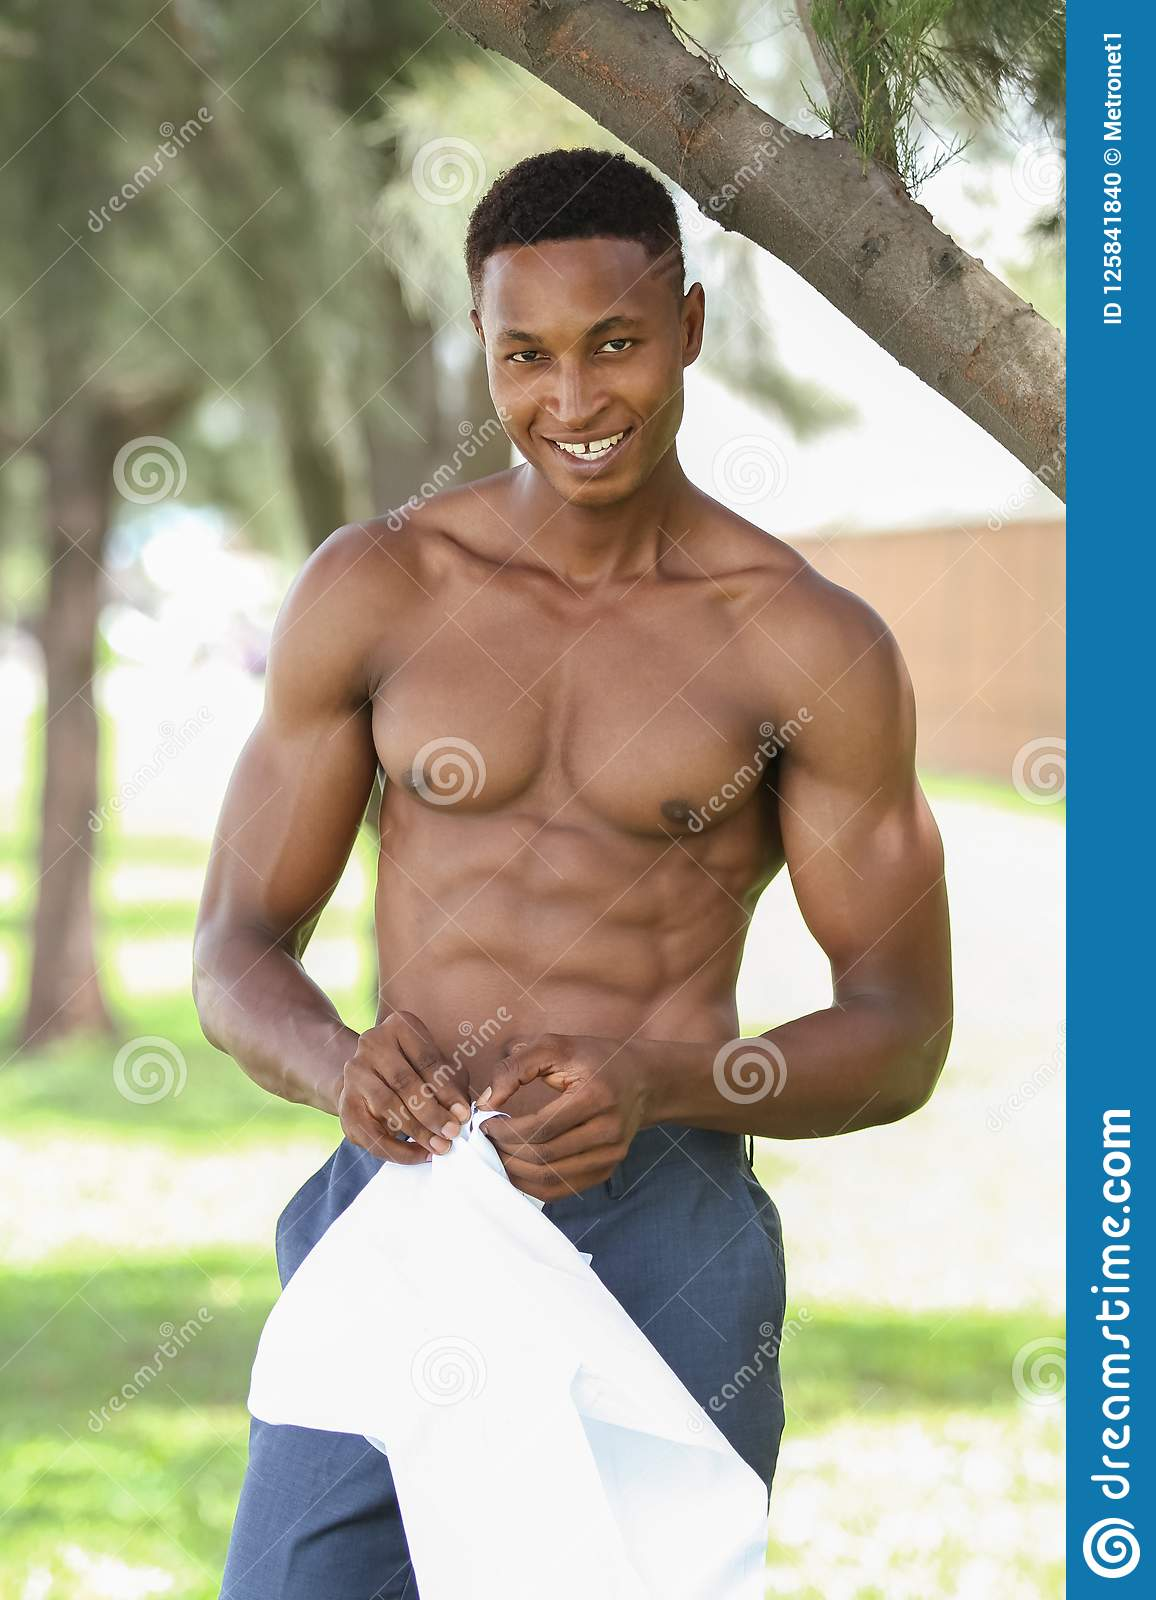 158 964 Male Black Model Photos Free Royalty Free Stock Photos From Dreamstime